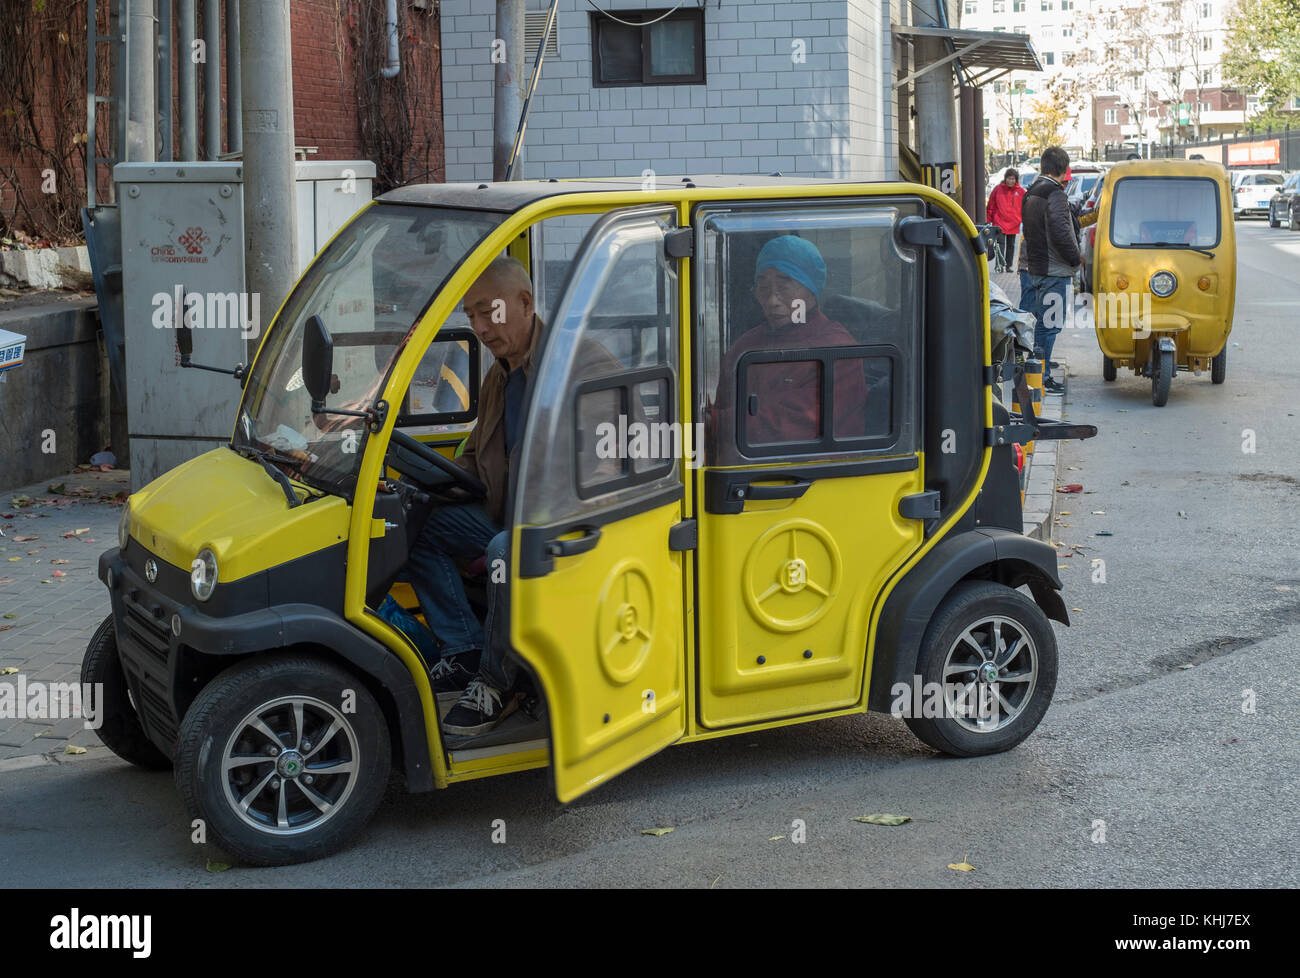 Unlicensed mini electric car is seen in Beijing, China. - Stock Image